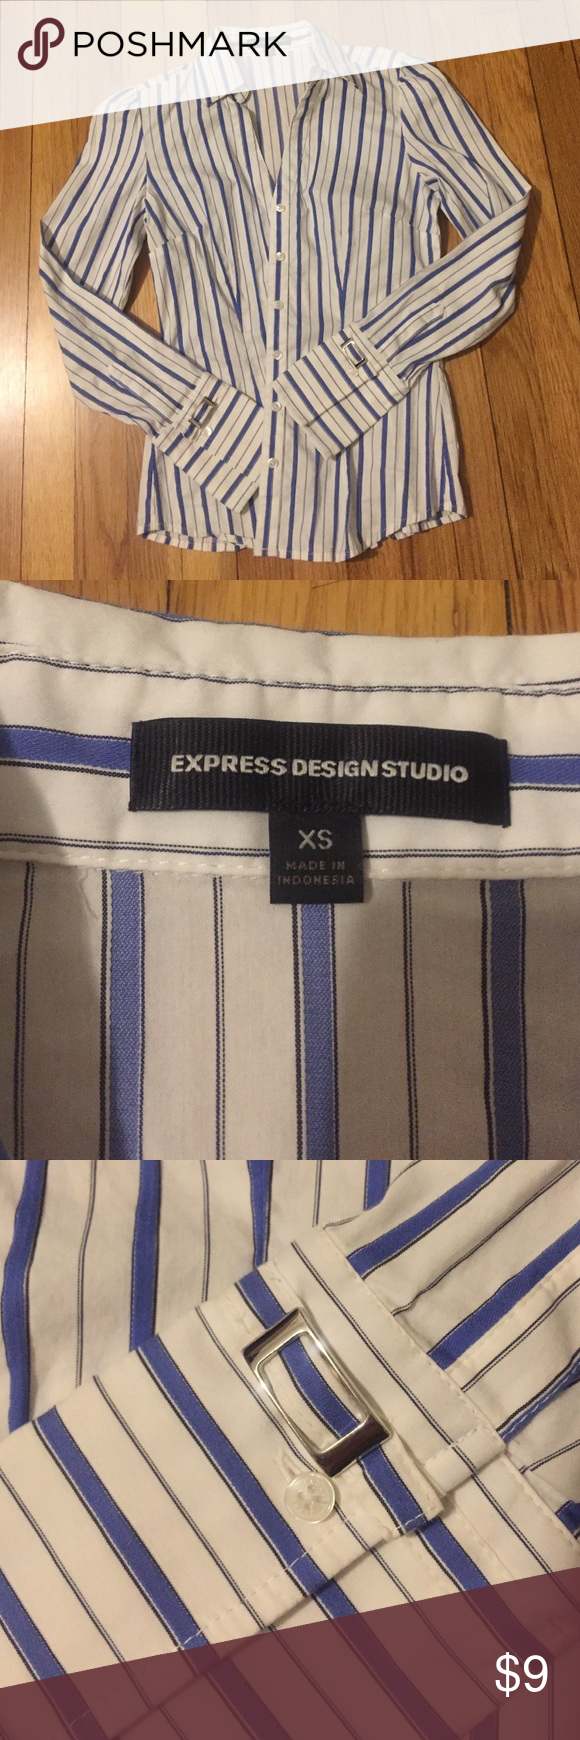 Express button down shirt XS Express design studios blue and white button down shirt size XS, fitted style, metal detail on sleeves, gently worn and washed once. Express Tops Button Down Shirts